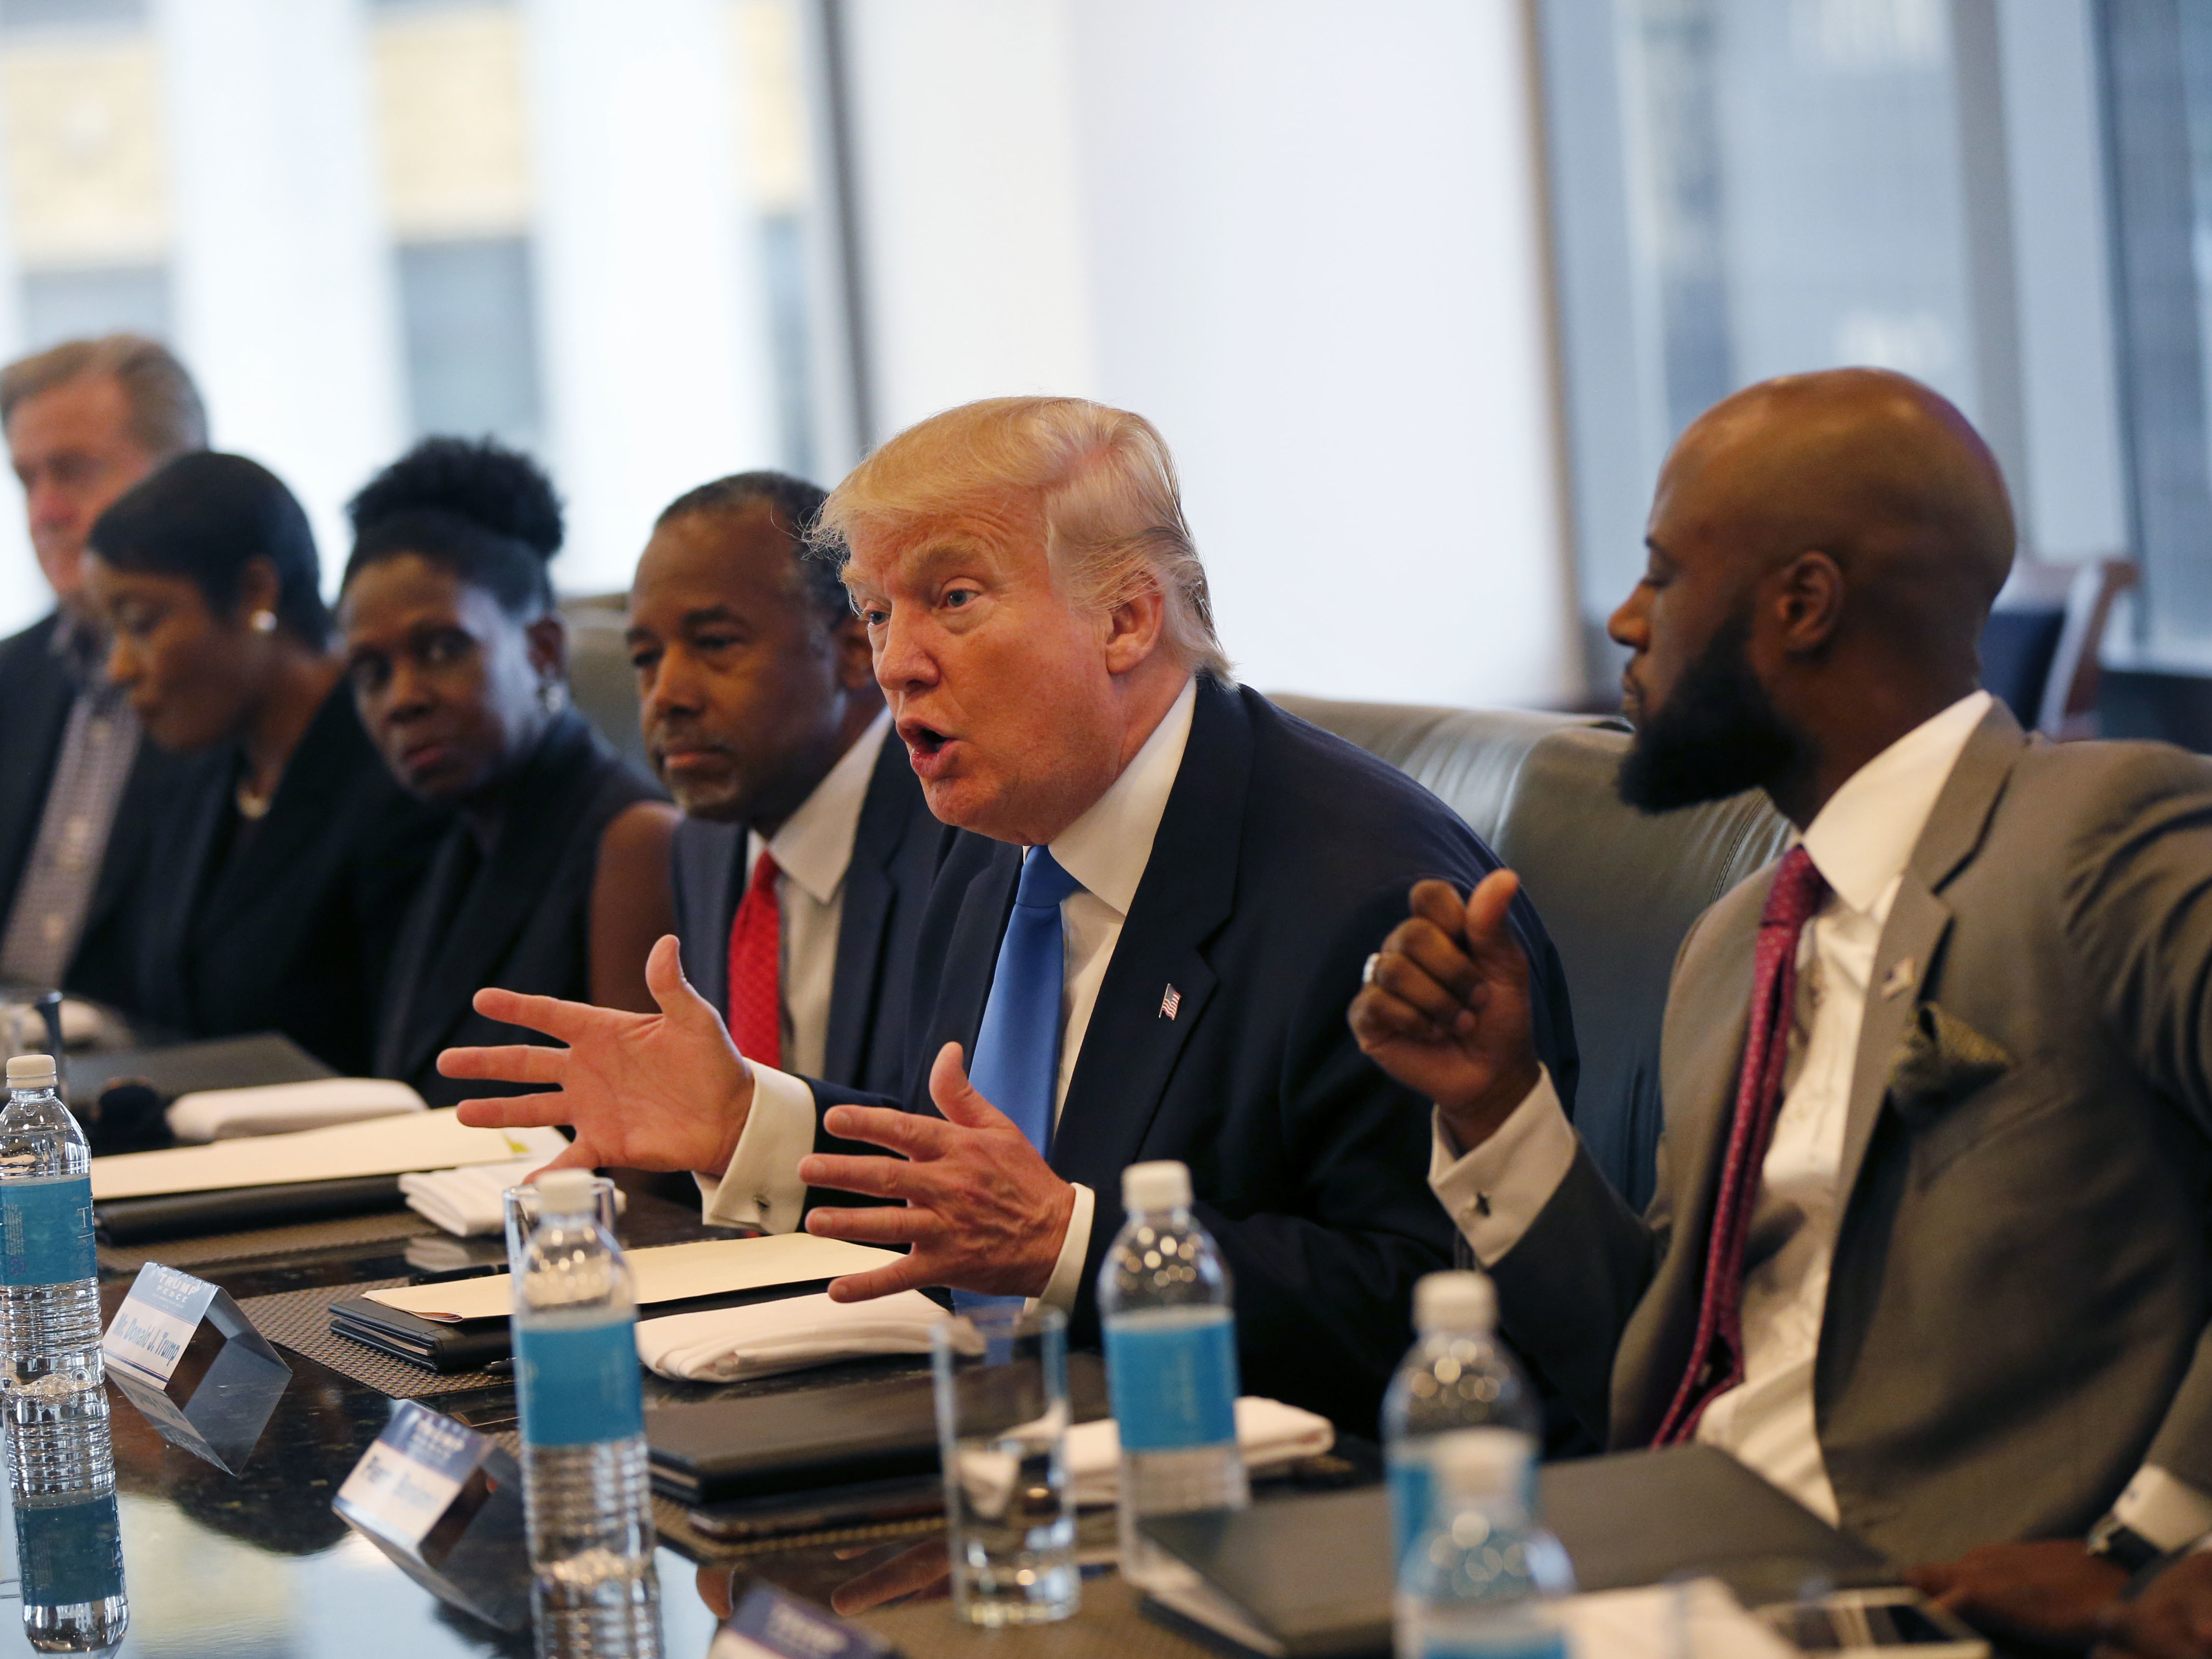 Voting Restrictions Won't 'Make America Great Again'